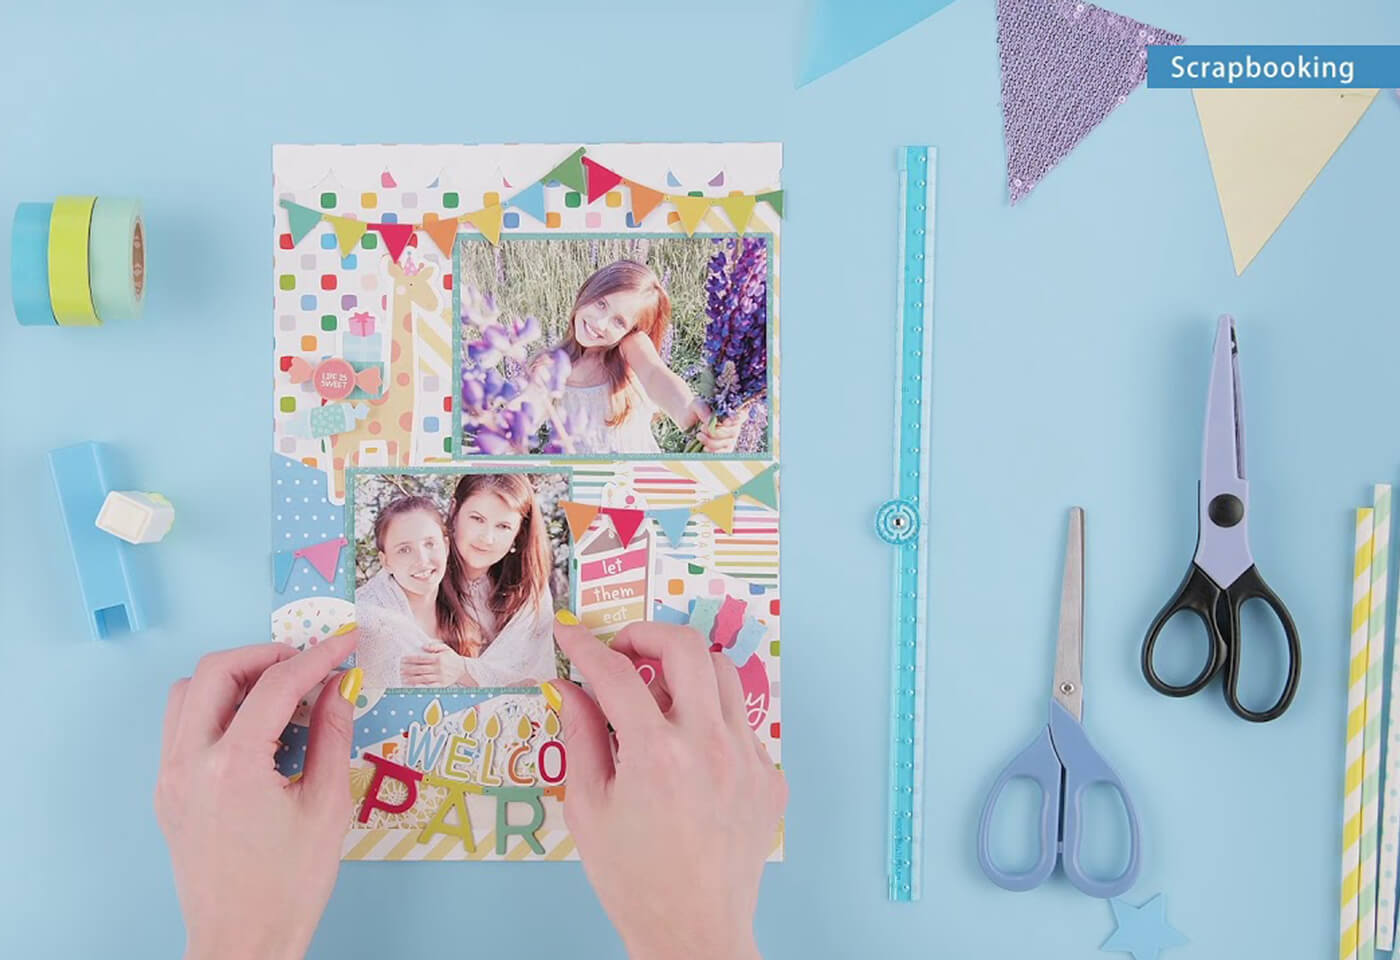 Scrapbooking using the PIXMA HOME TS9560